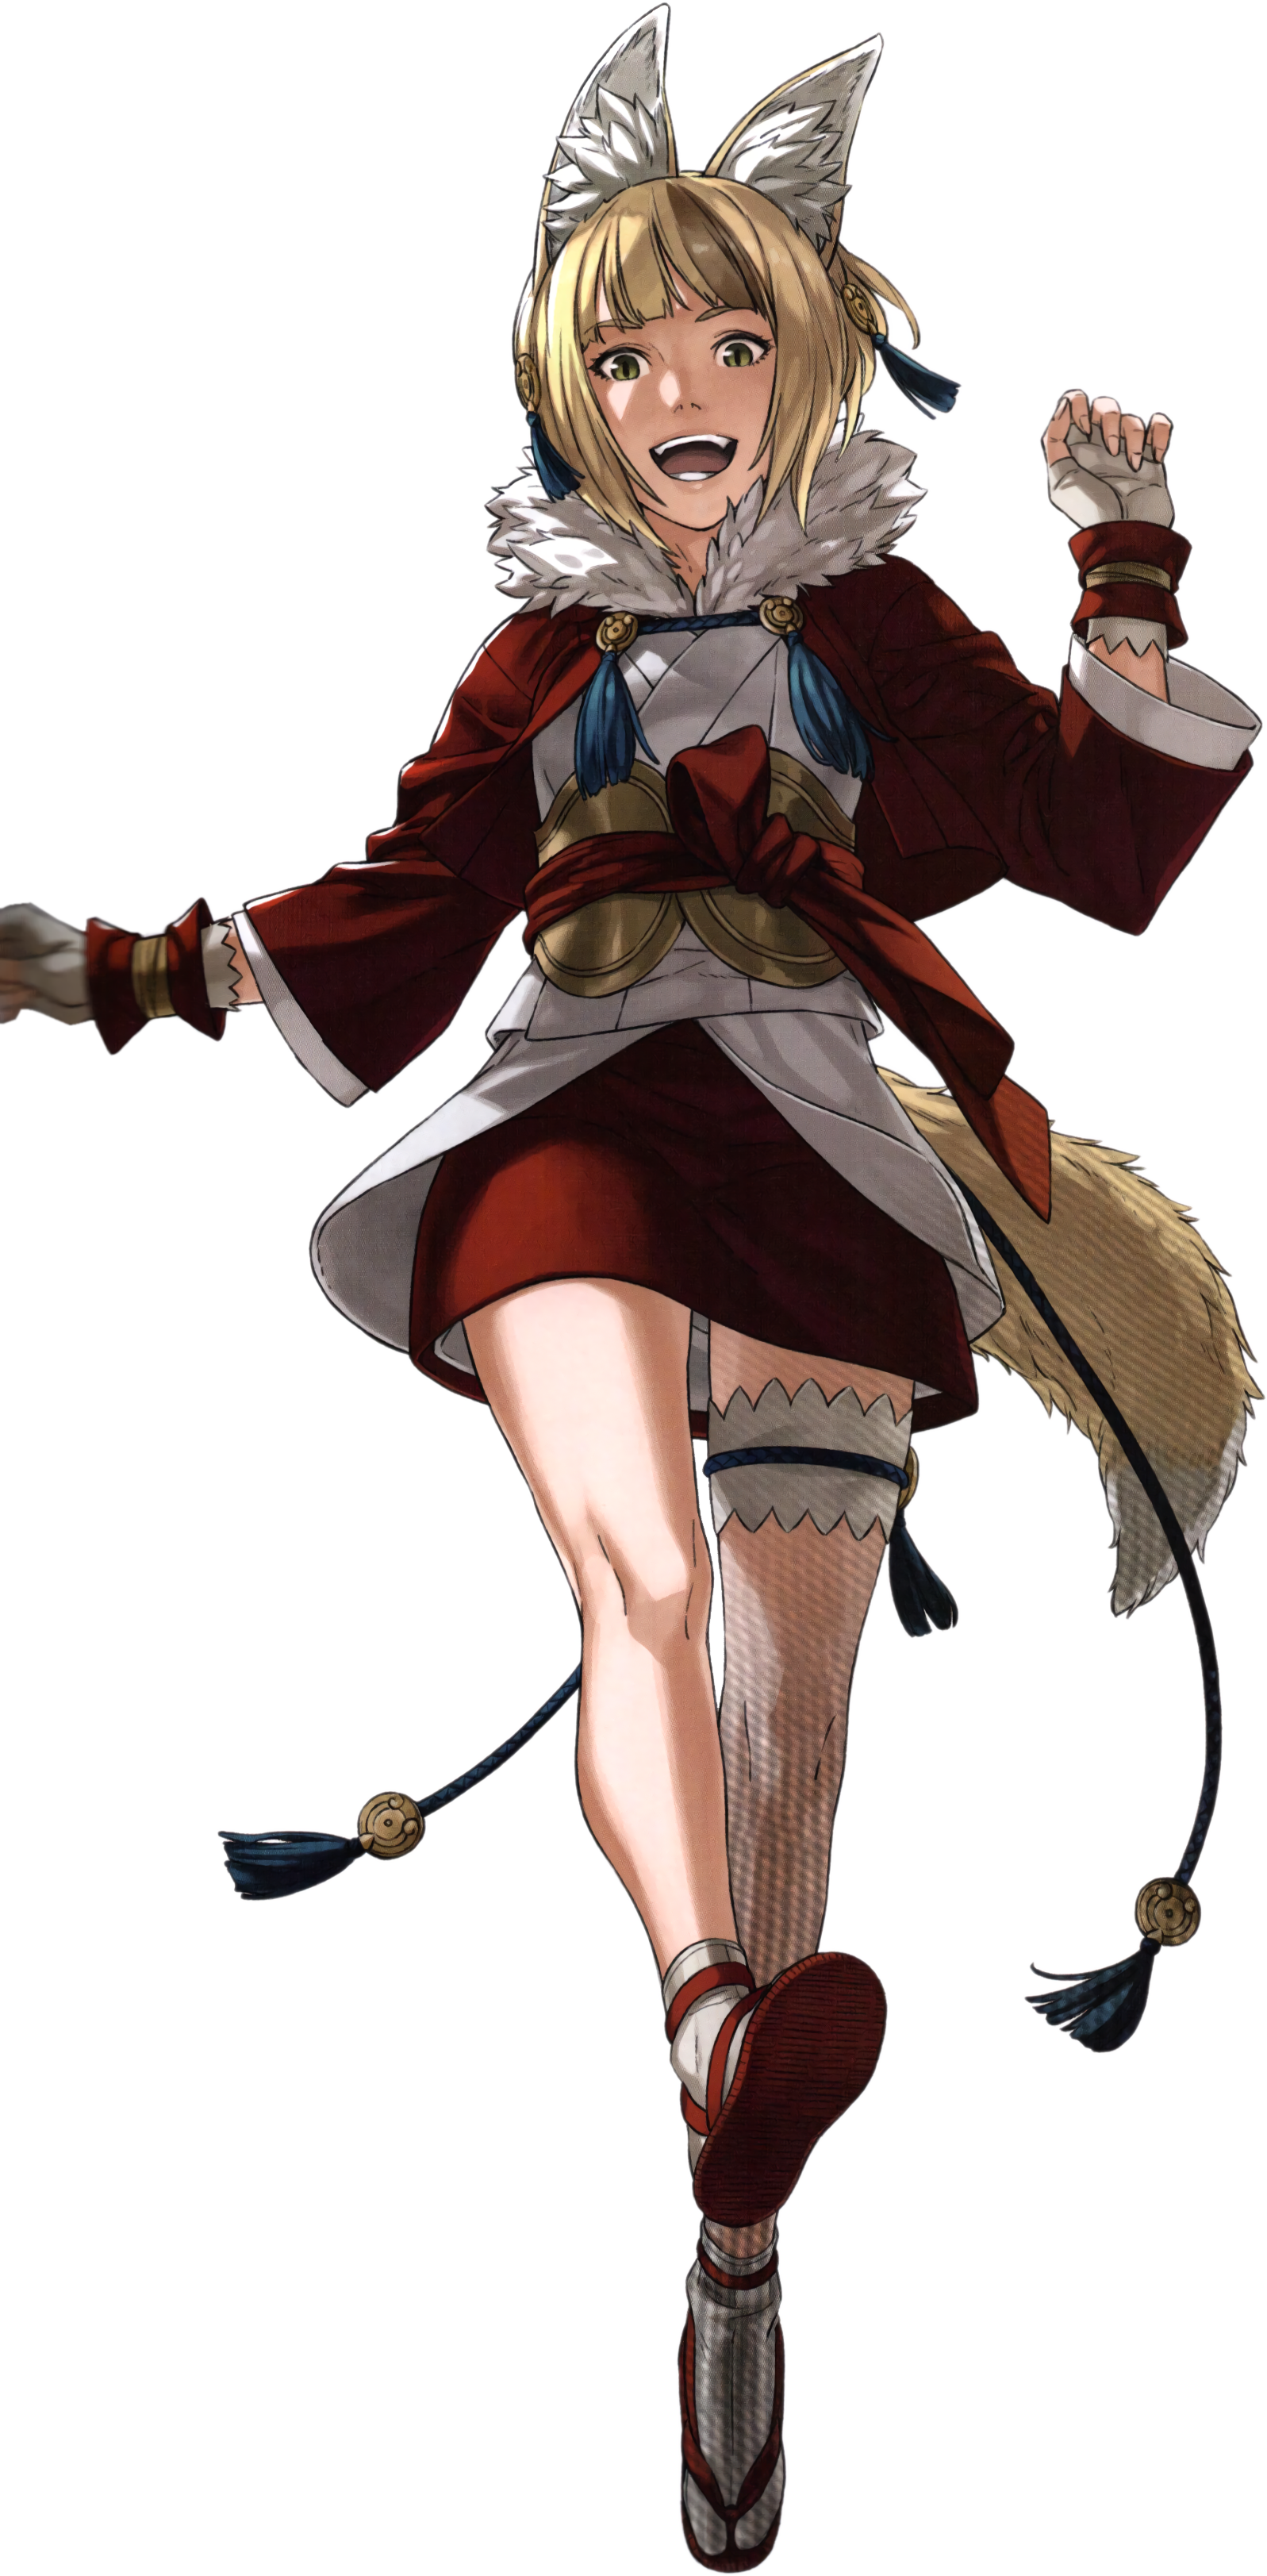 Selkie Fire Emblem Wiki Fandom Powered By Wikia